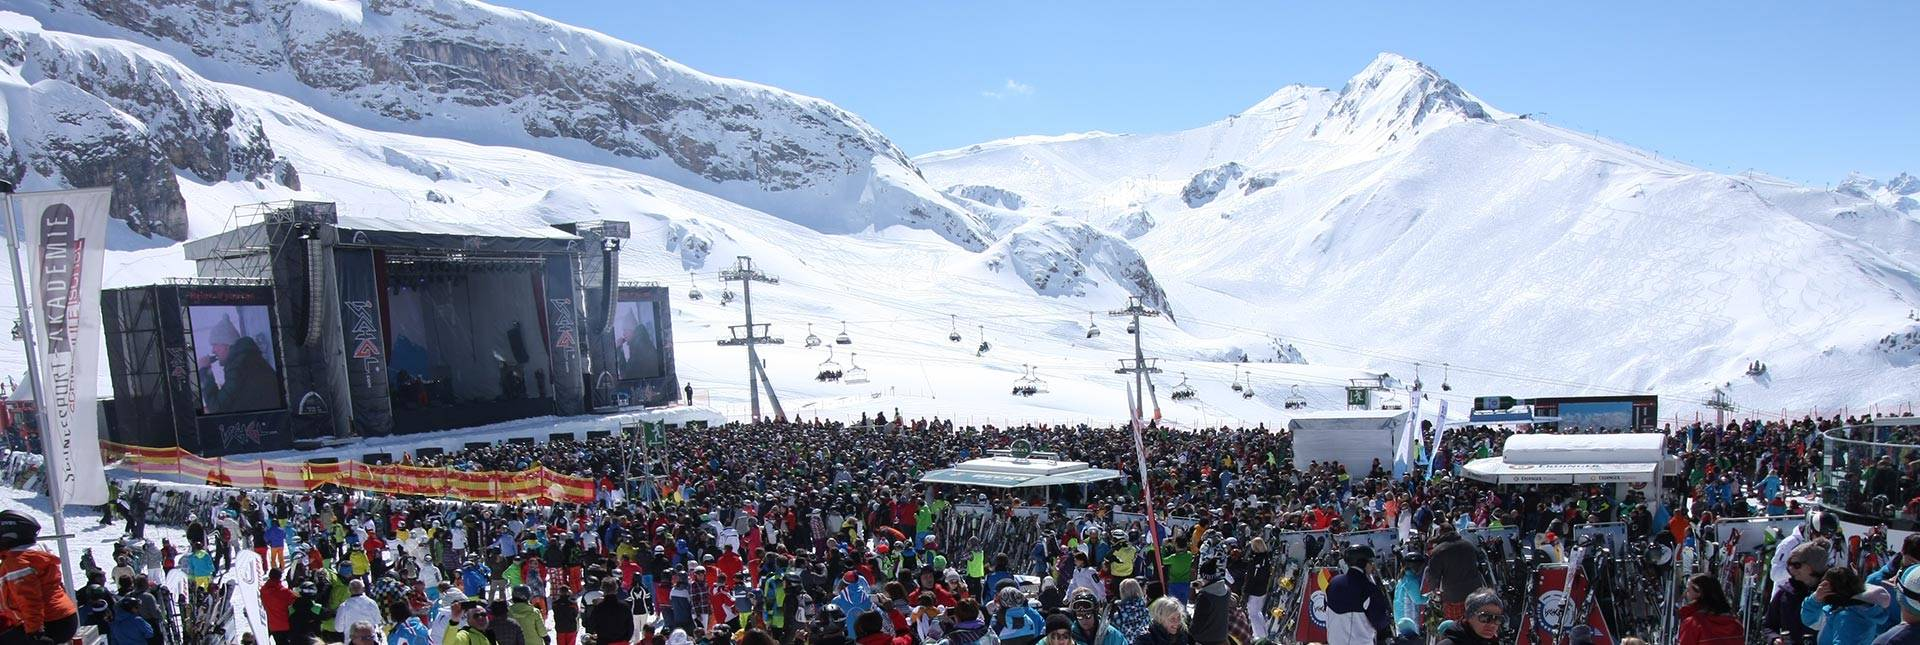 Events Ischgl